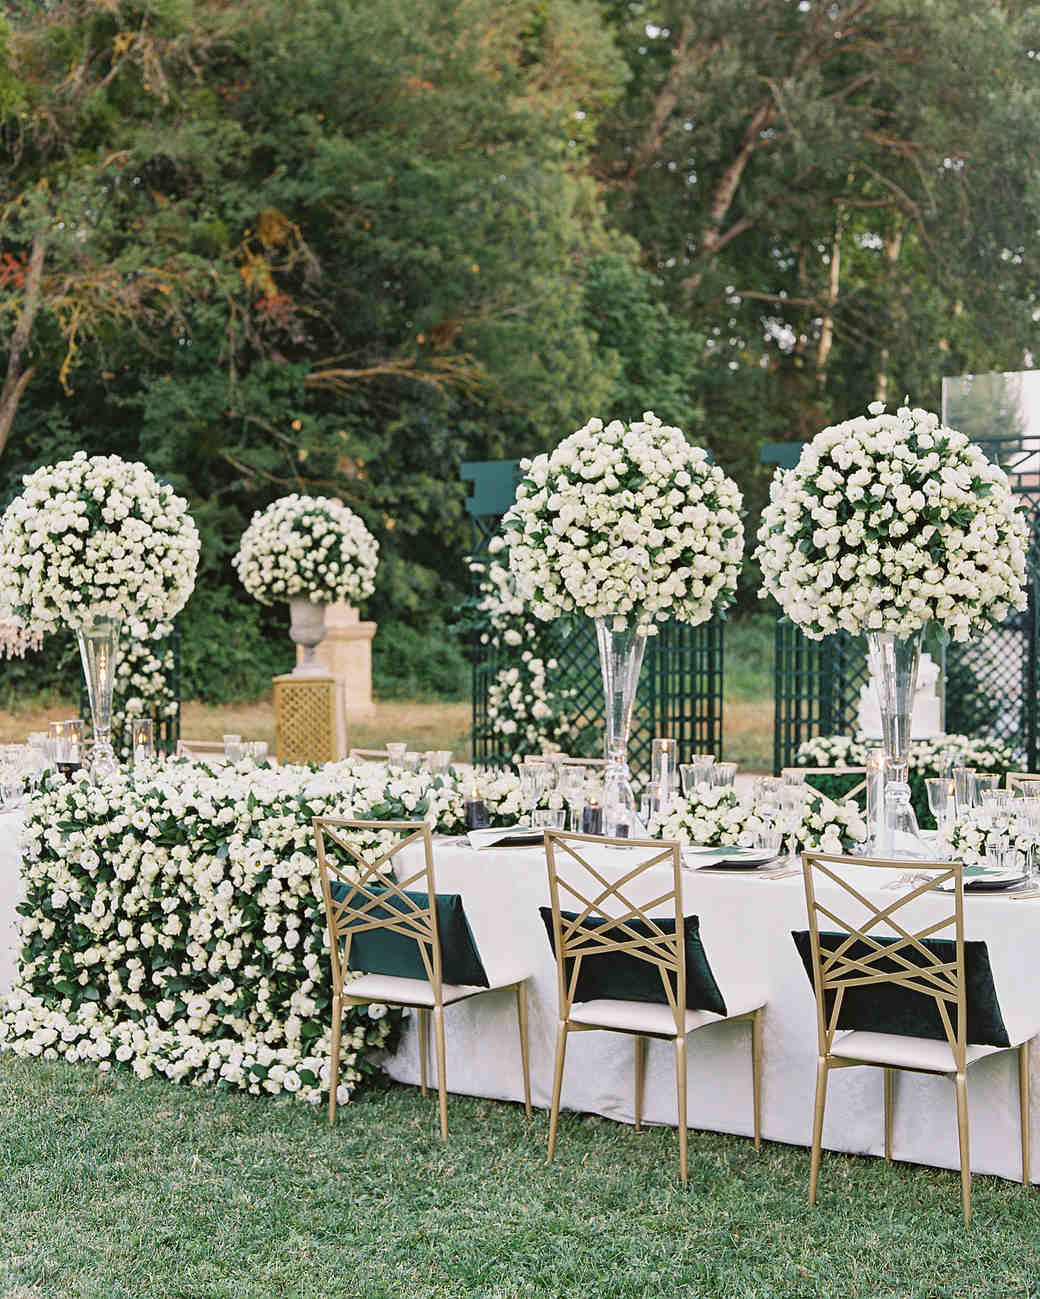 janet patrick wedding reception table in garden